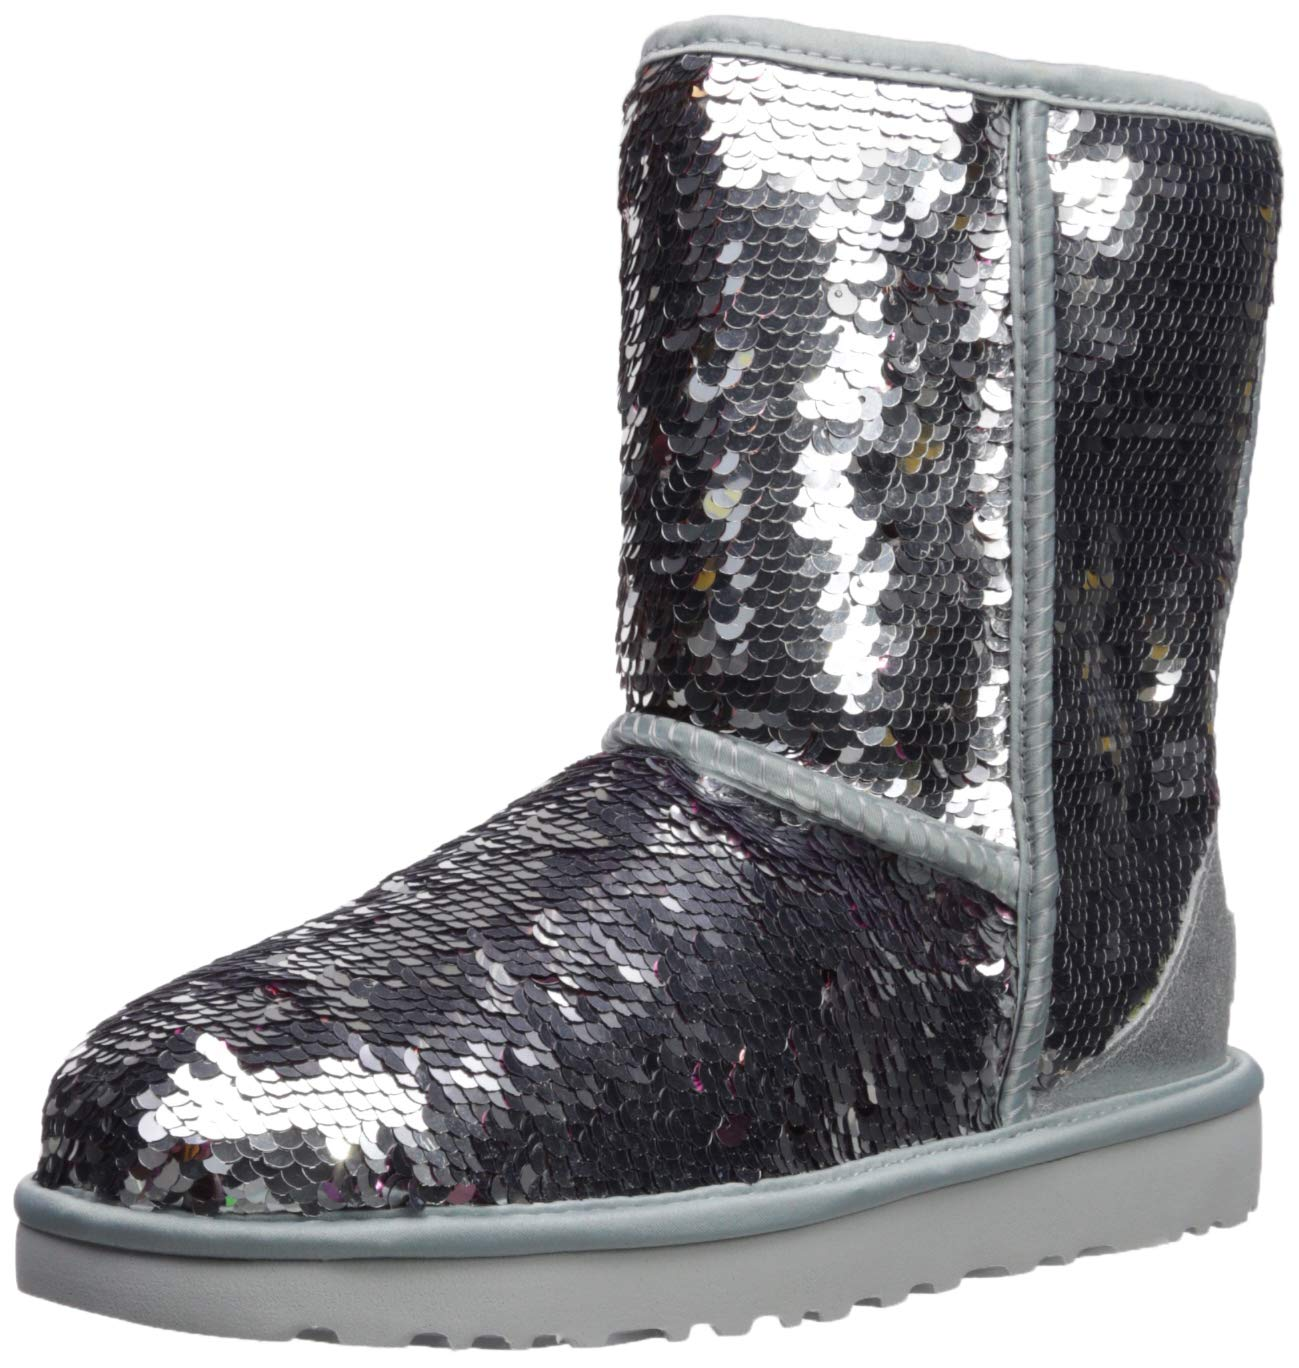 UGG Women's W Classic Short Sequin Fashion Boot Silver 10 M US